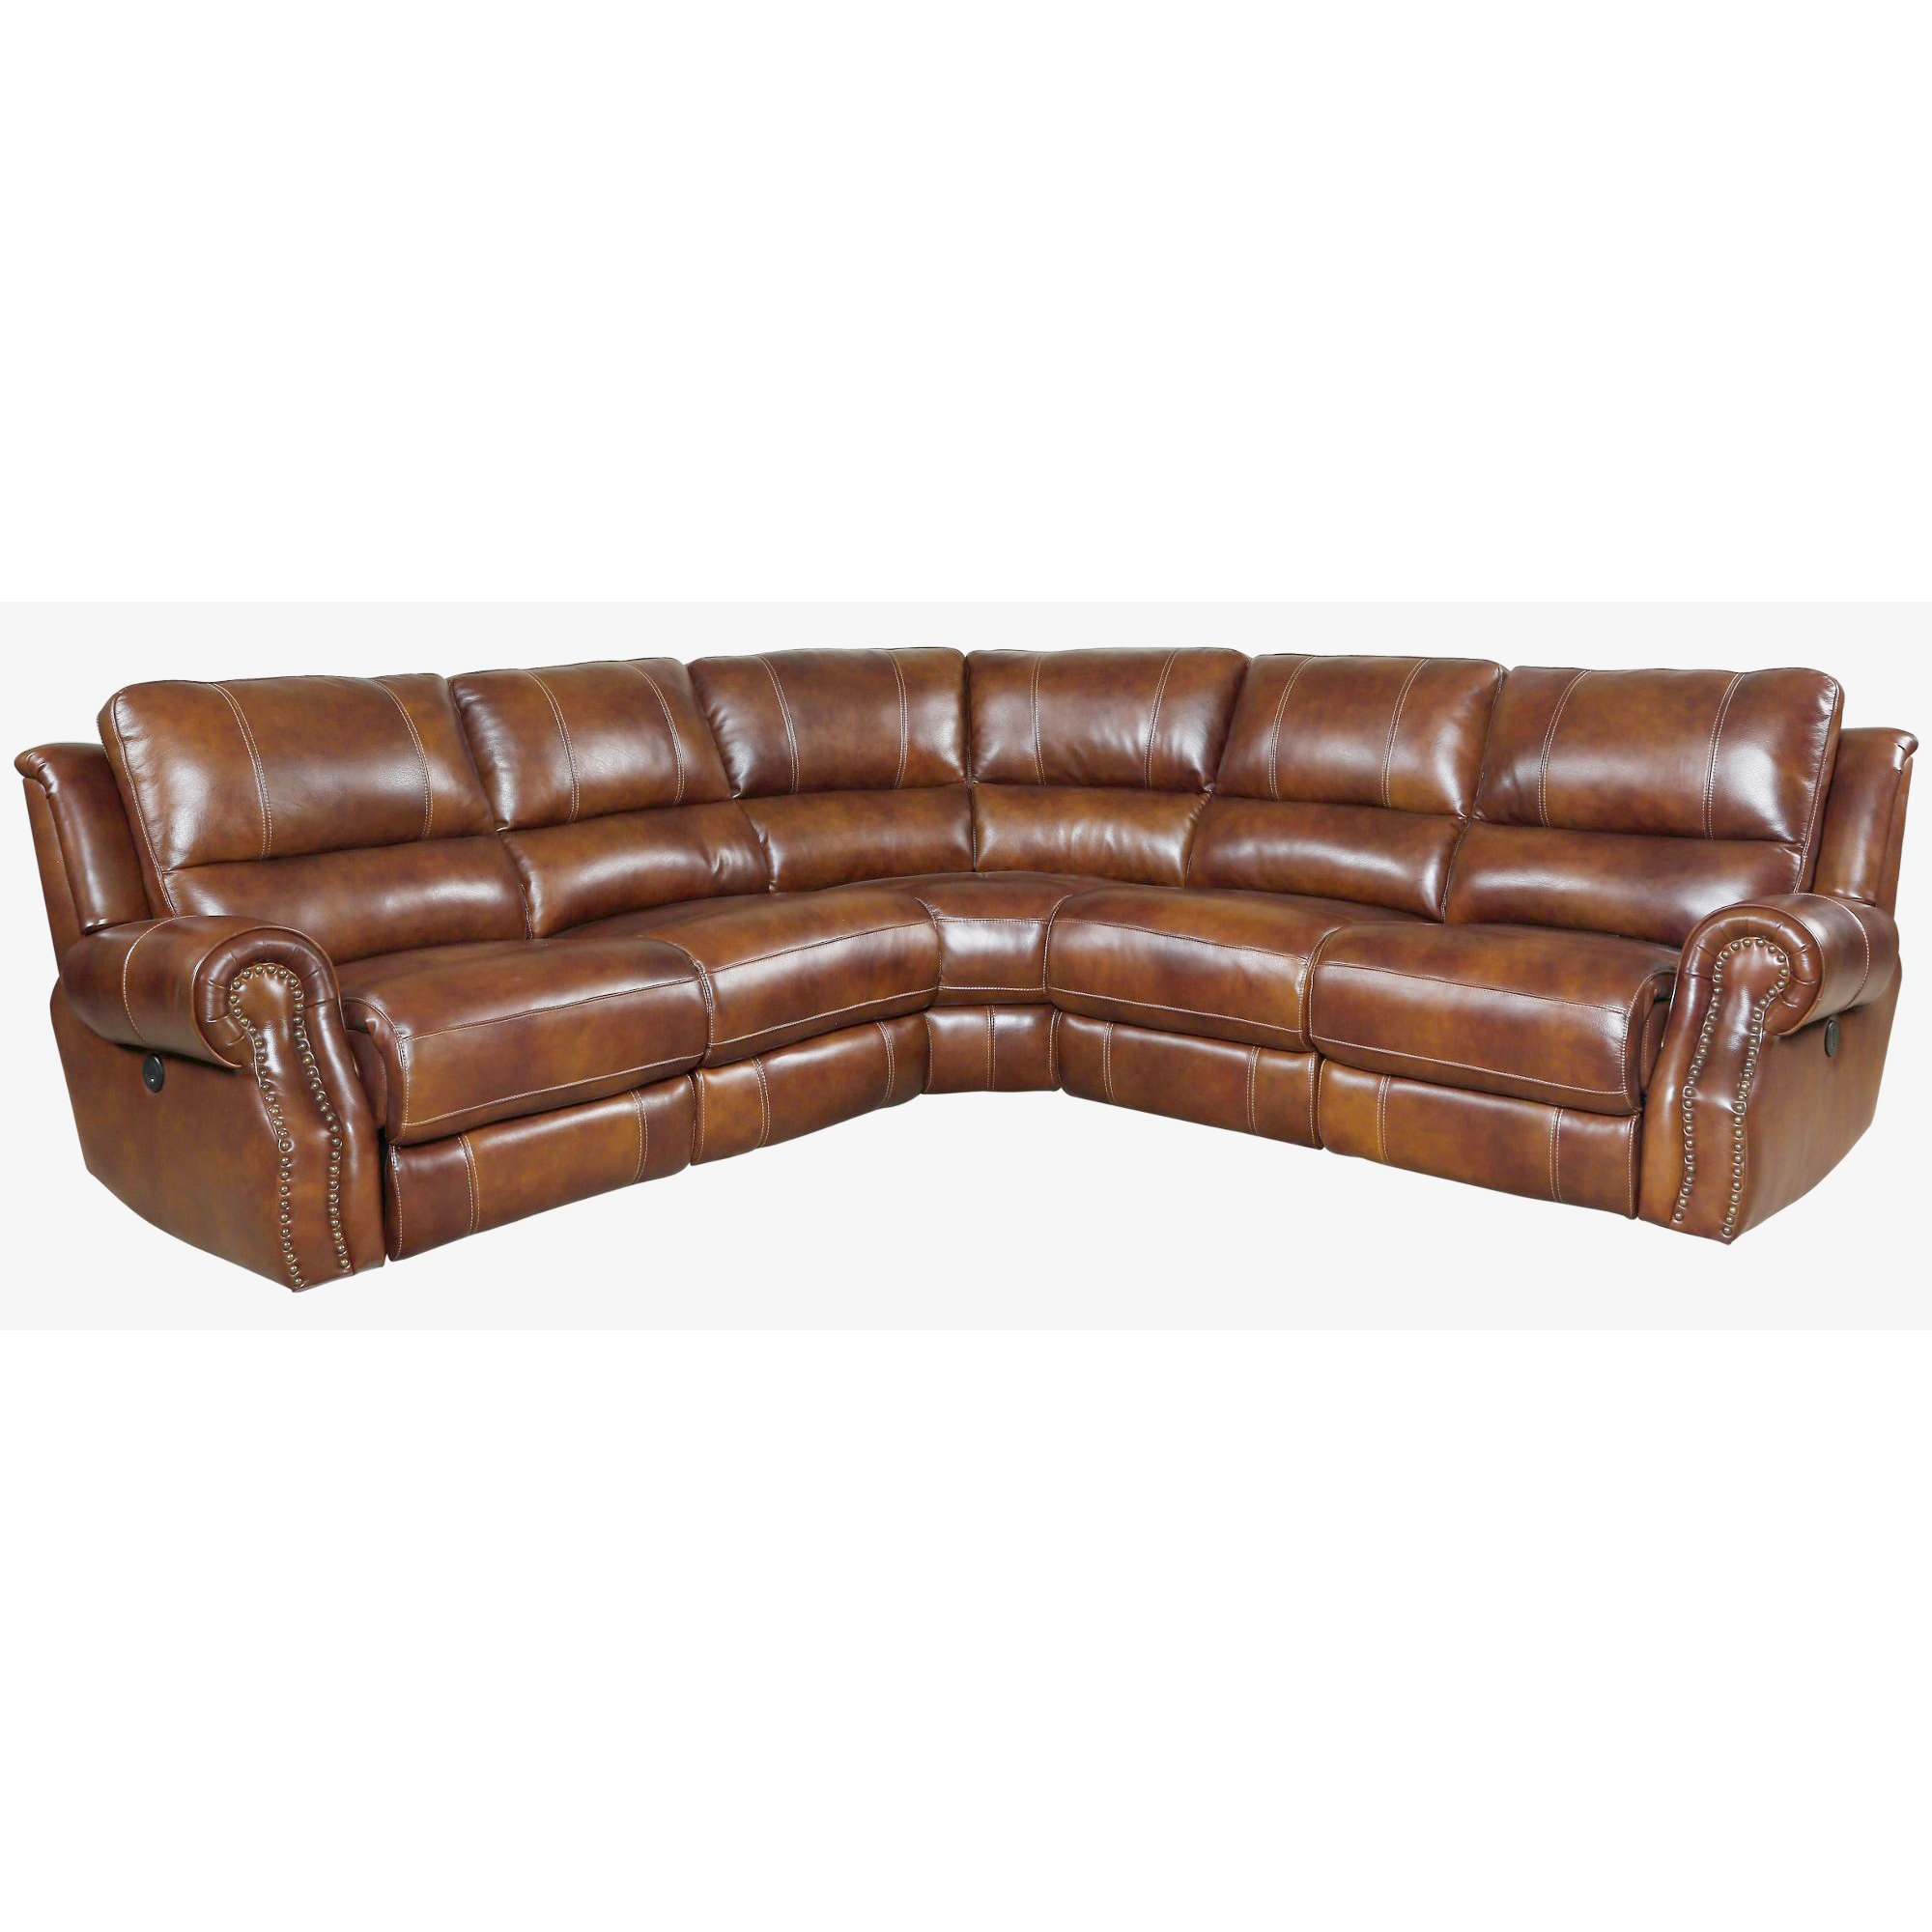 ... Chestnut Brown Leather-Match 5-Piece Power Reclining Sectional - Nailhead ...  sc 1 st  RC Willey & Reclining sectional u0026 leather reclining sectional | RC Willey ... islam-shia.org